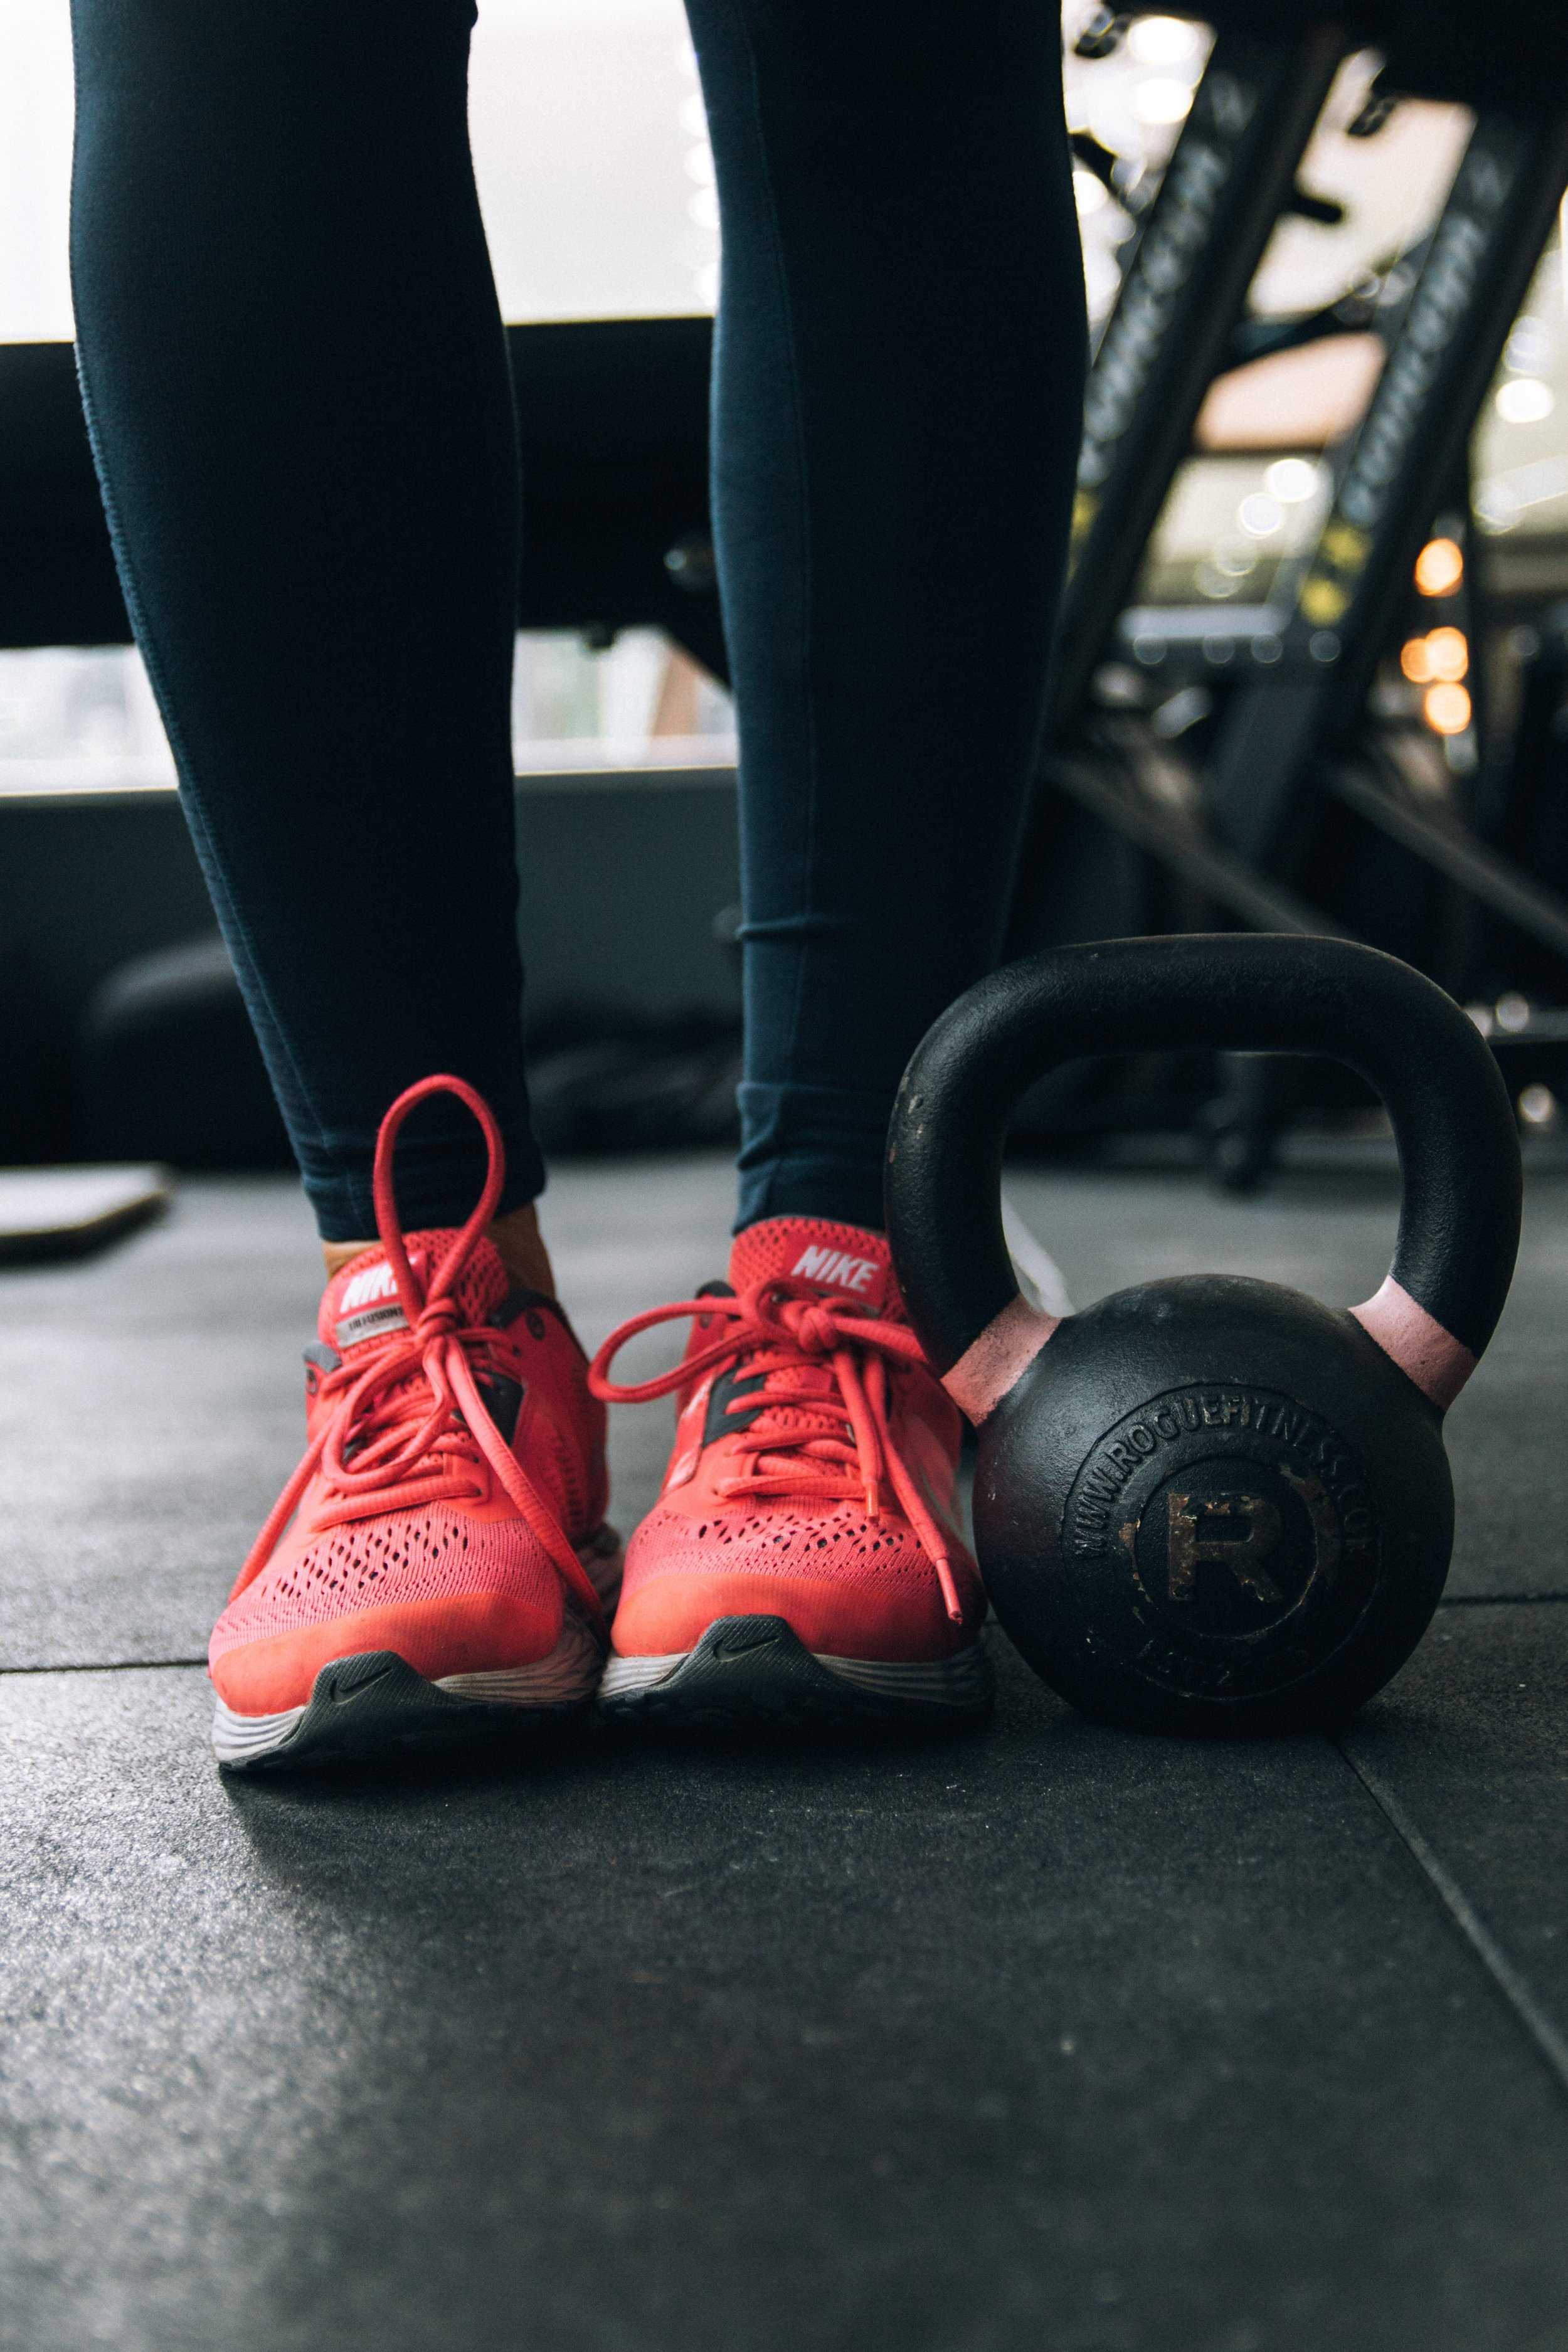 Work towards the next level of you - Whether you are looking to build muscle mass, shed body fat and tone up, or simply break through a plateau, Training by Tamara can help you reach your personal goals.Learn more ➝